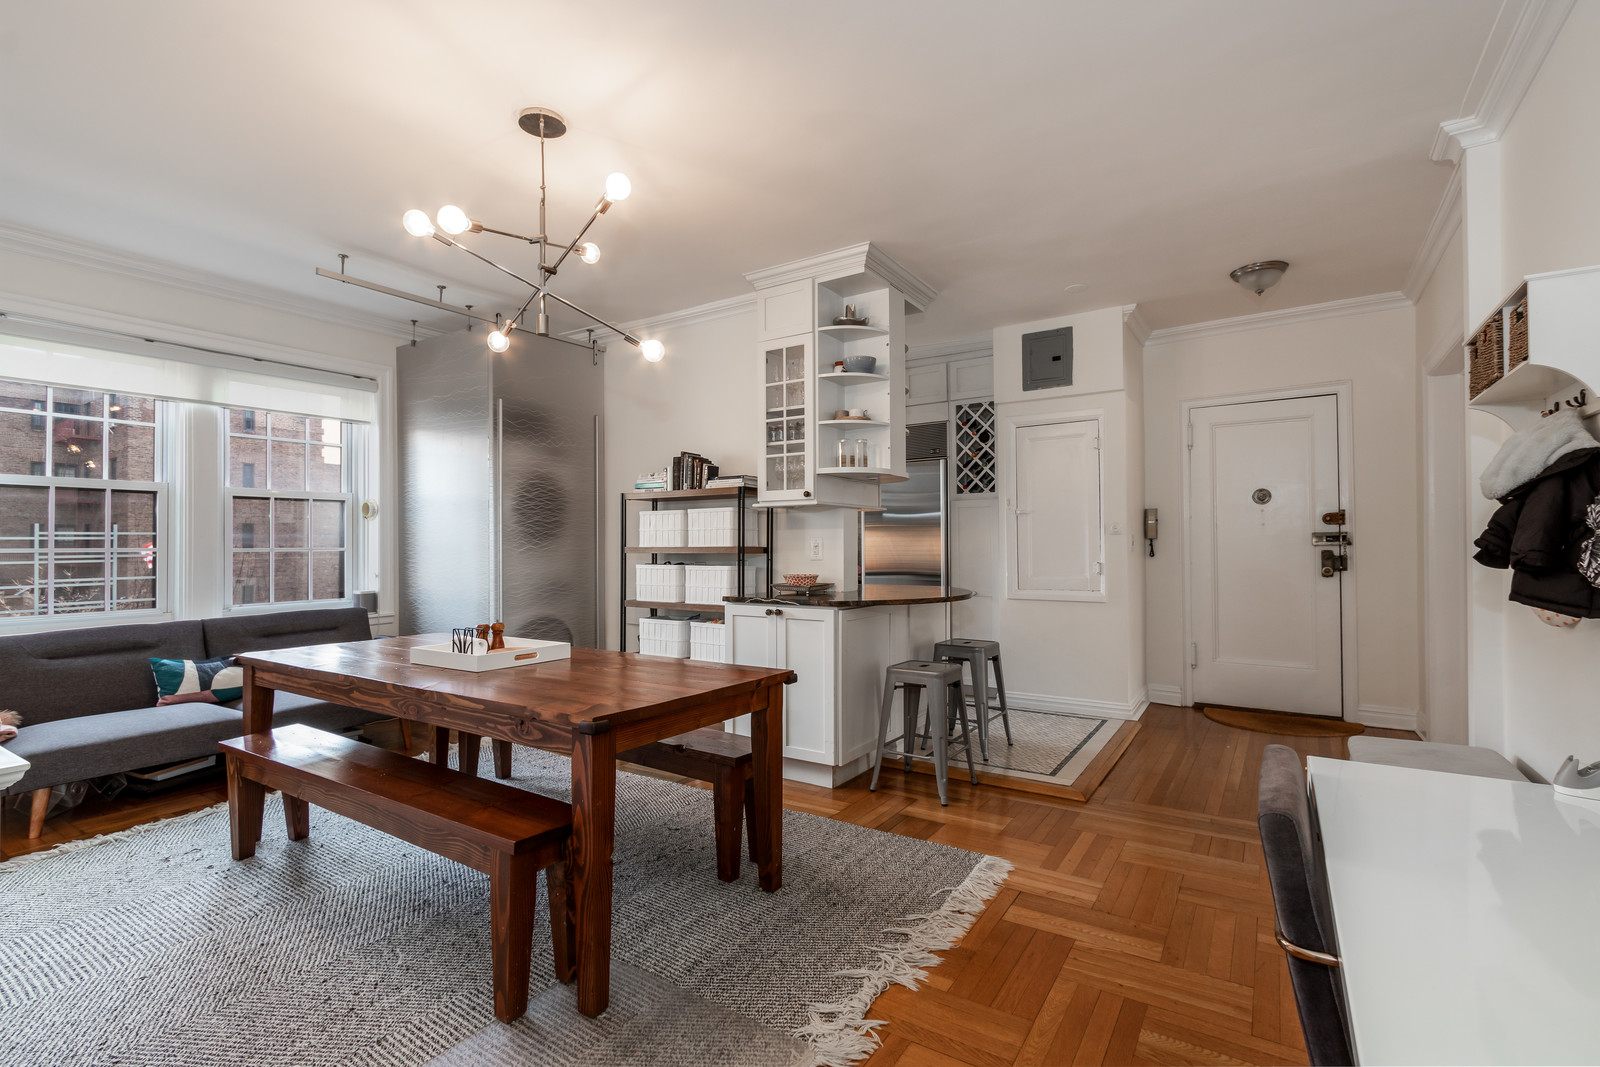 525 West 238th Street, New York, Bronx, New York, United States 10463, 2 Bedrooms Bedrooms, ,1 BathroomBathrooms,Co-op,SOLD,Fieldston Garden Apartments,West 238th Street,1119